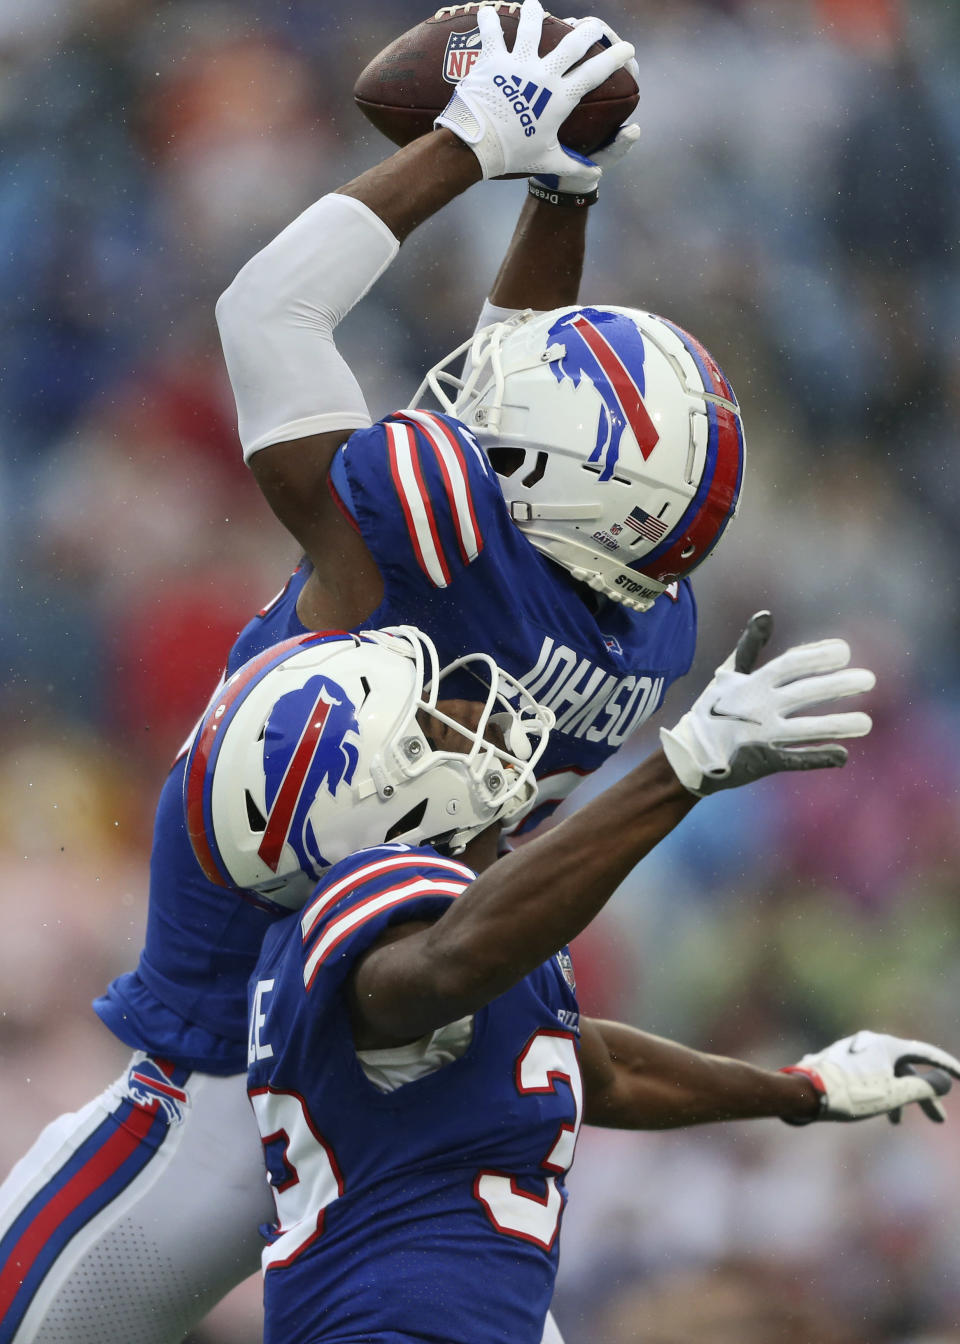 Buffalo Bills defensive back Jaquan Johnson intercepts a pass during the second half of an NFL football game against the Houston Texans, Sunday, Oct. 3, 2021, in Orchard Park, N.Y. (AP Photo/Joshua Bessex)